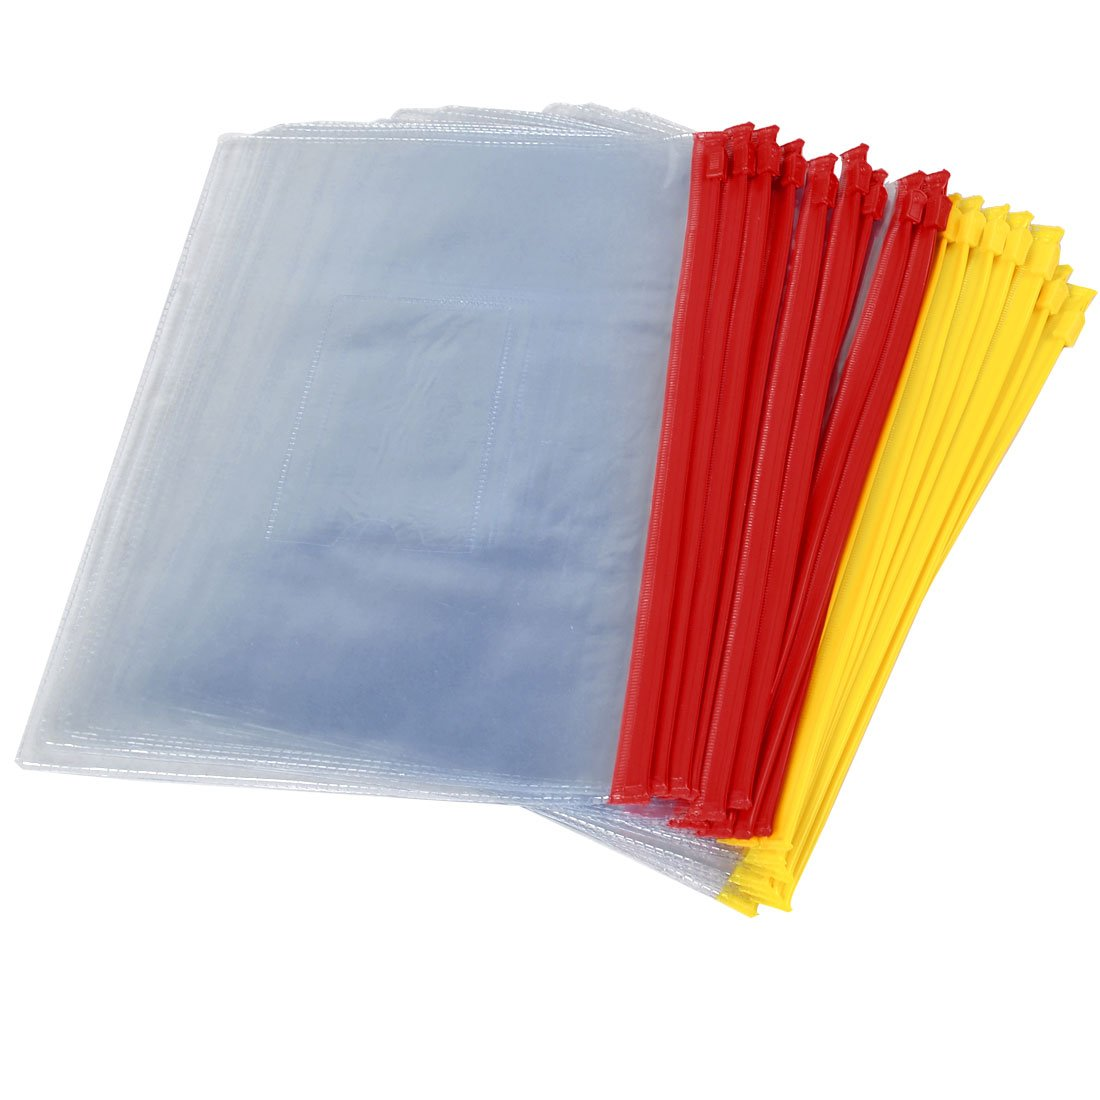 SOSW-20PCS Plastic Slider Zip Lock Bags Files Holder For A5 Paper